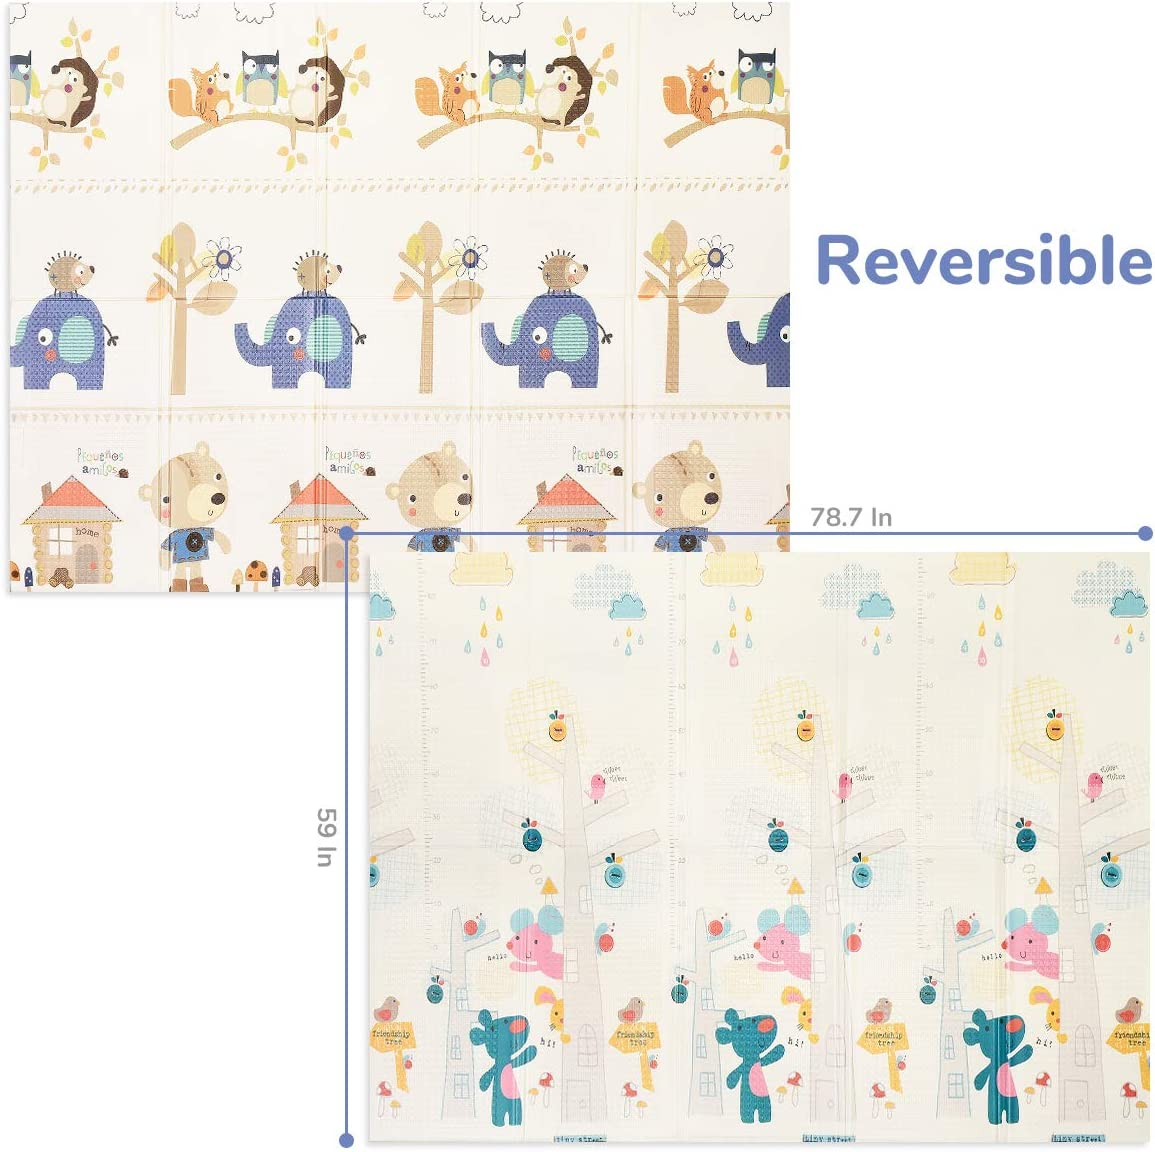 """FOLDING Play Mat /… Bear House 0.4/"""" Thick Extra Large Reversible Crawling Mat Portable Toddlers Kids Waterproof Non-Slip Activity Tummy Time 6.6FT x 5FT BPA FREE Non-Toxic Foam Baby Playmat"""